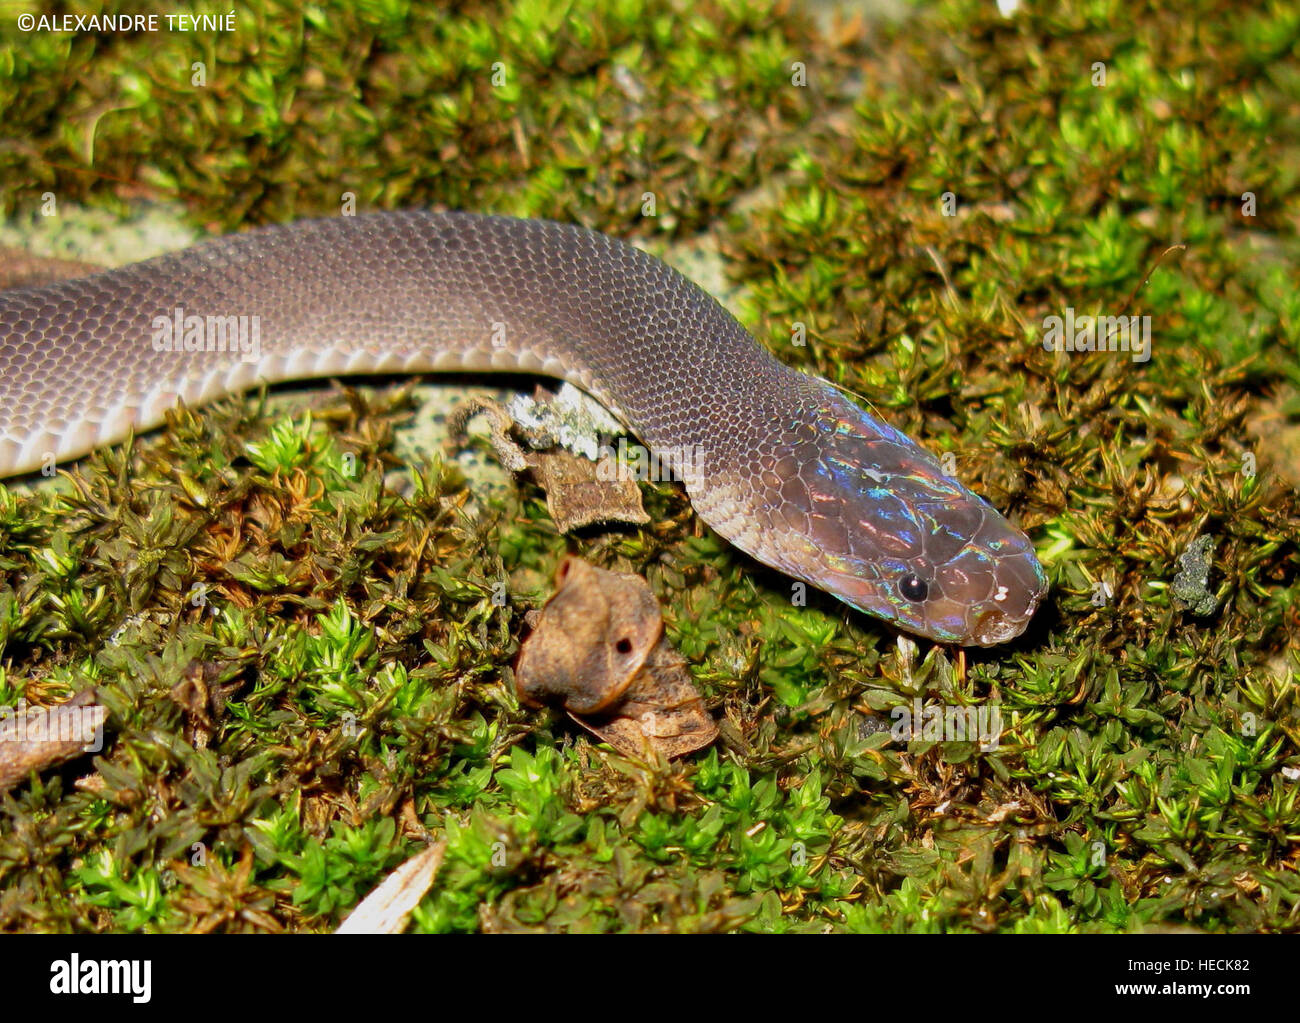 Phnom Penh. 19th Dec, 2016. Photo released by the World Wildlife Fund (WWF) on Dec. 19, 2016 shows a new species - Stock Image